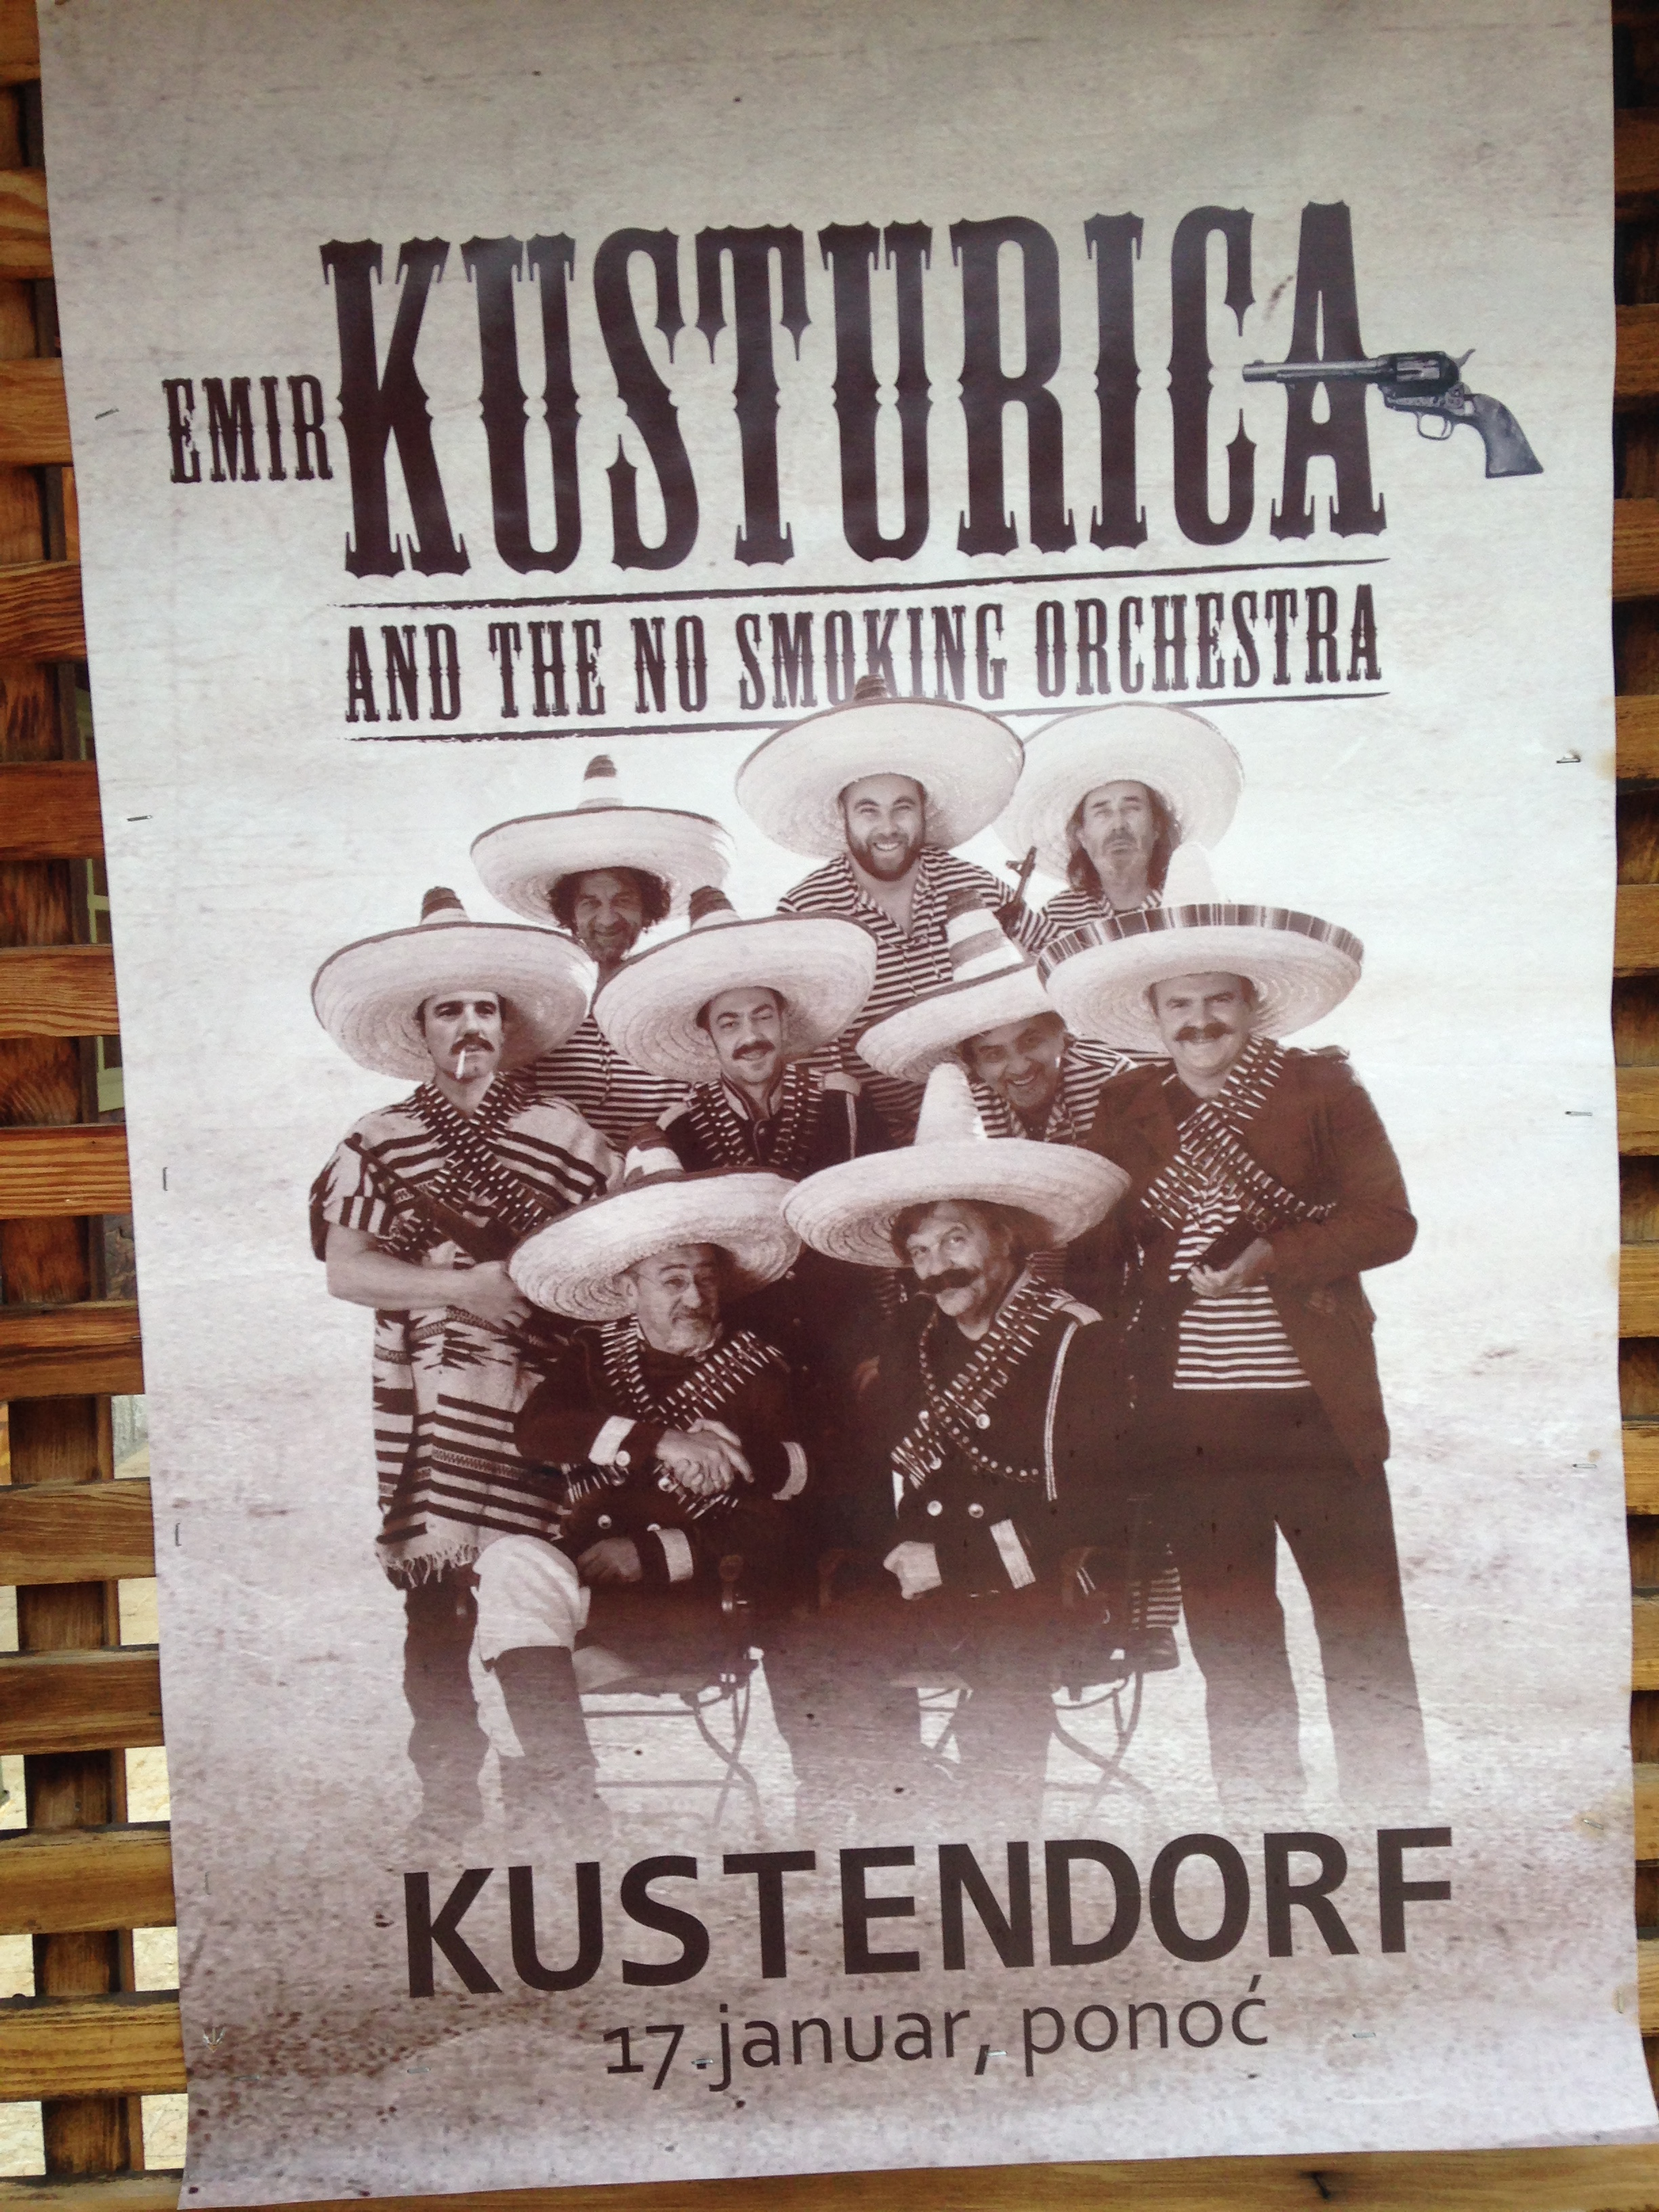 Poster for Kusturica's band  The No Smoking Orchestra.